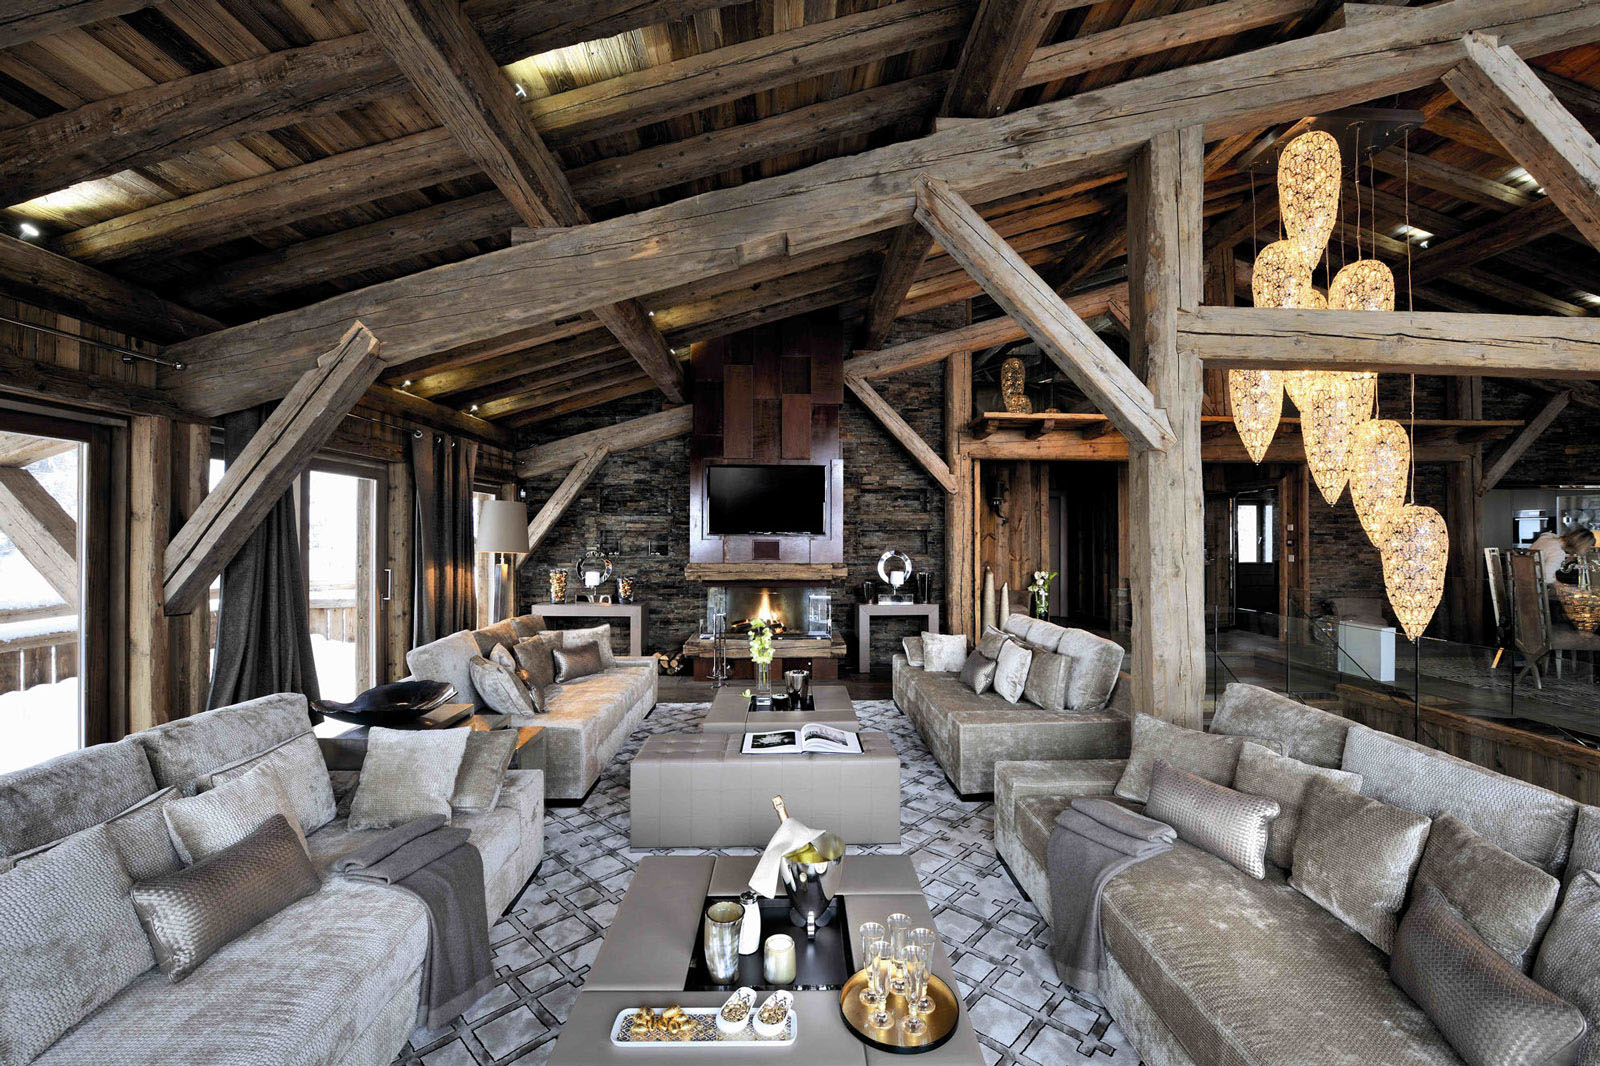 Chic modern rustic chalet in the rh ne alpes idesignarch for Decoration interieur chalet montagne